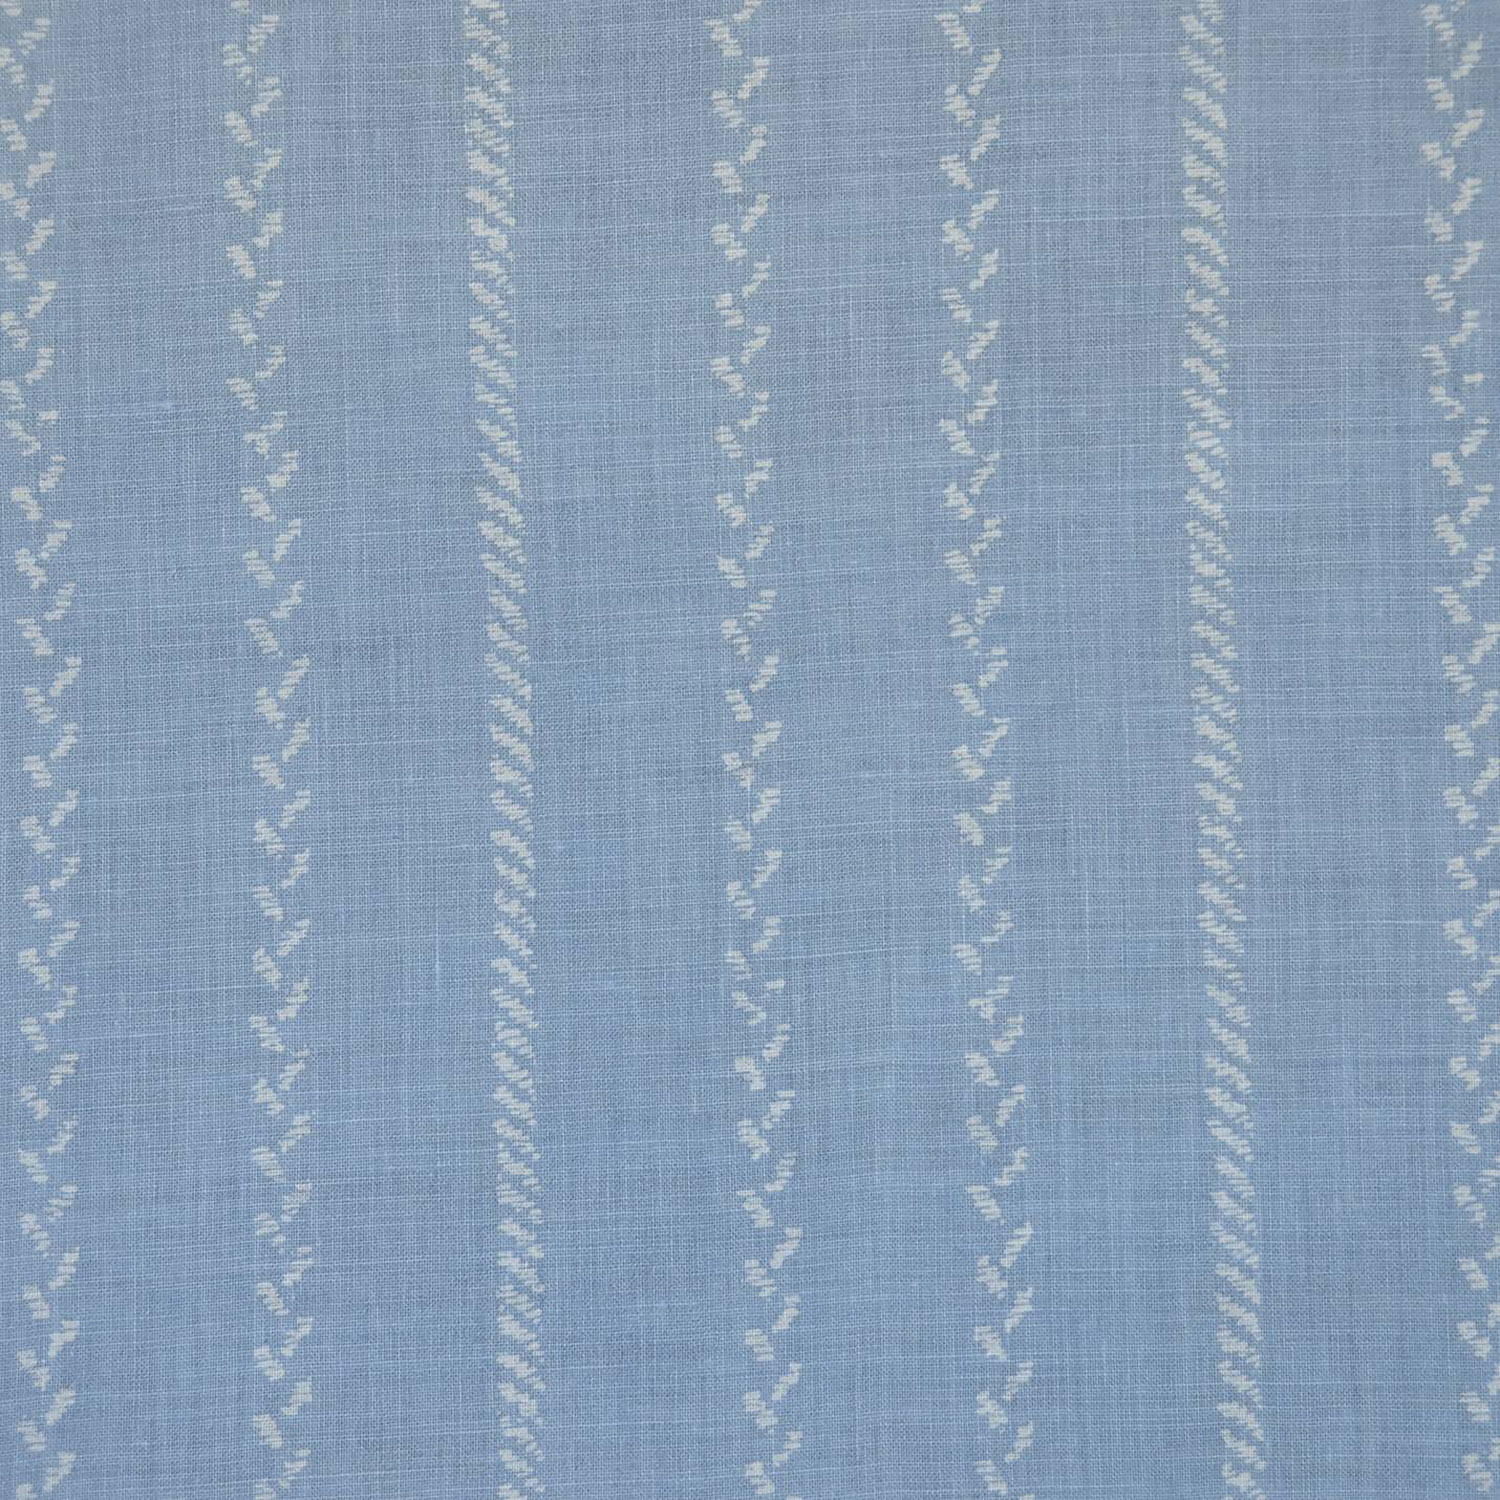 <p><strong>PELHAM STRIPE</strong>blue 9700-05<a href=/collection-3/pelham-stripe-blue-9700-05>More →</a></p>